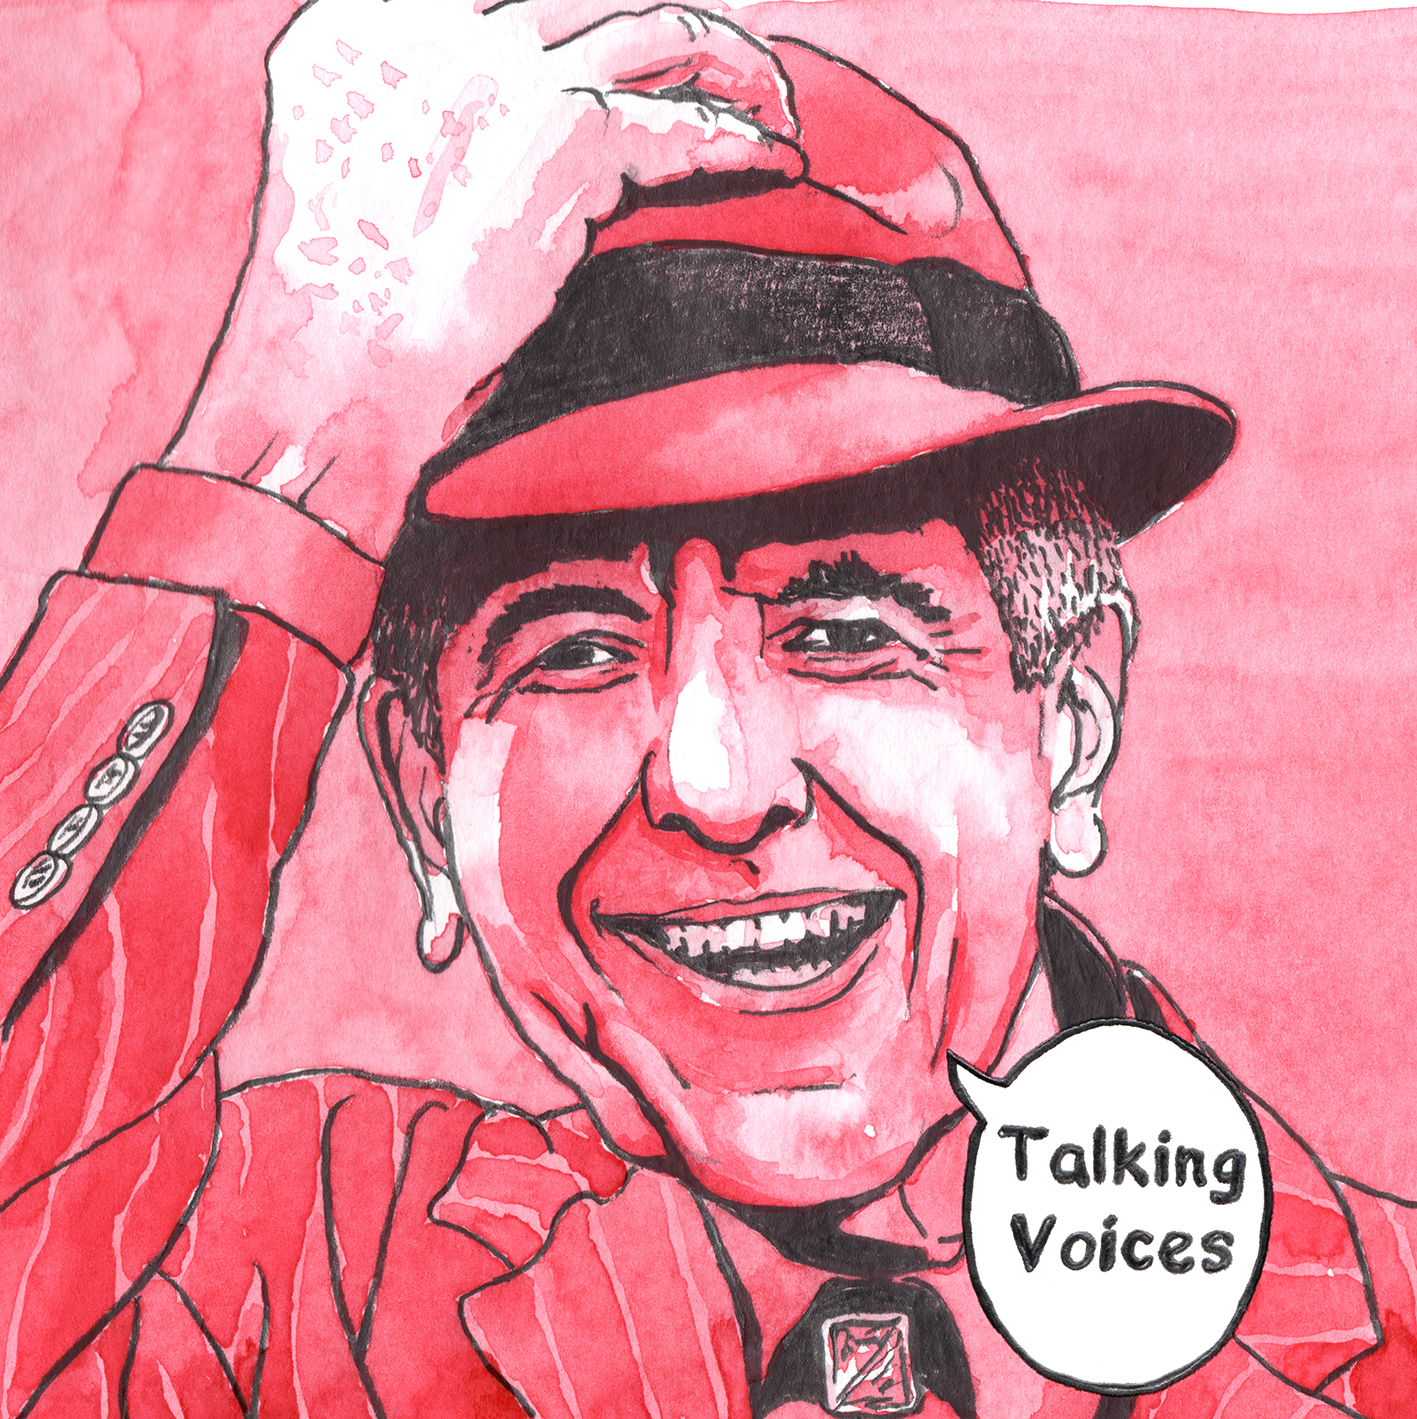 LEONARD COHEN'S TALKING VOICES